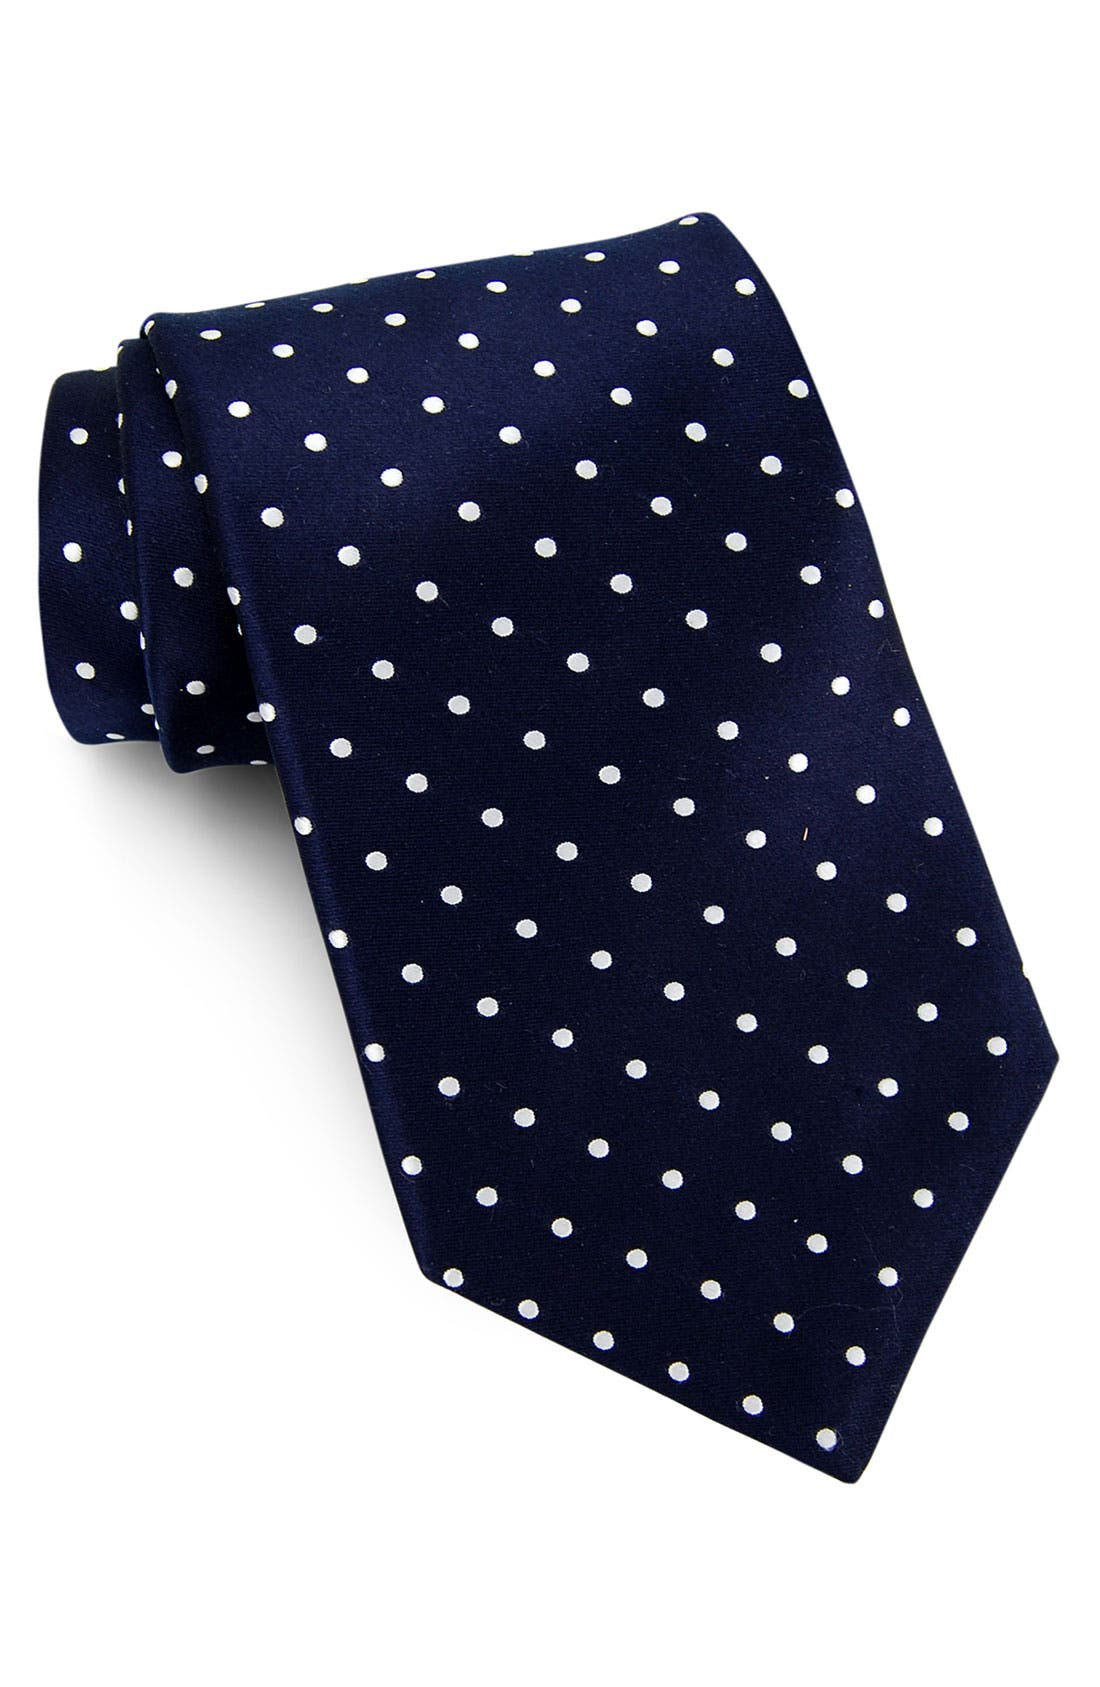 Alternate Image 1 Selected - John W. Nordstrom® Woven Silk Tie